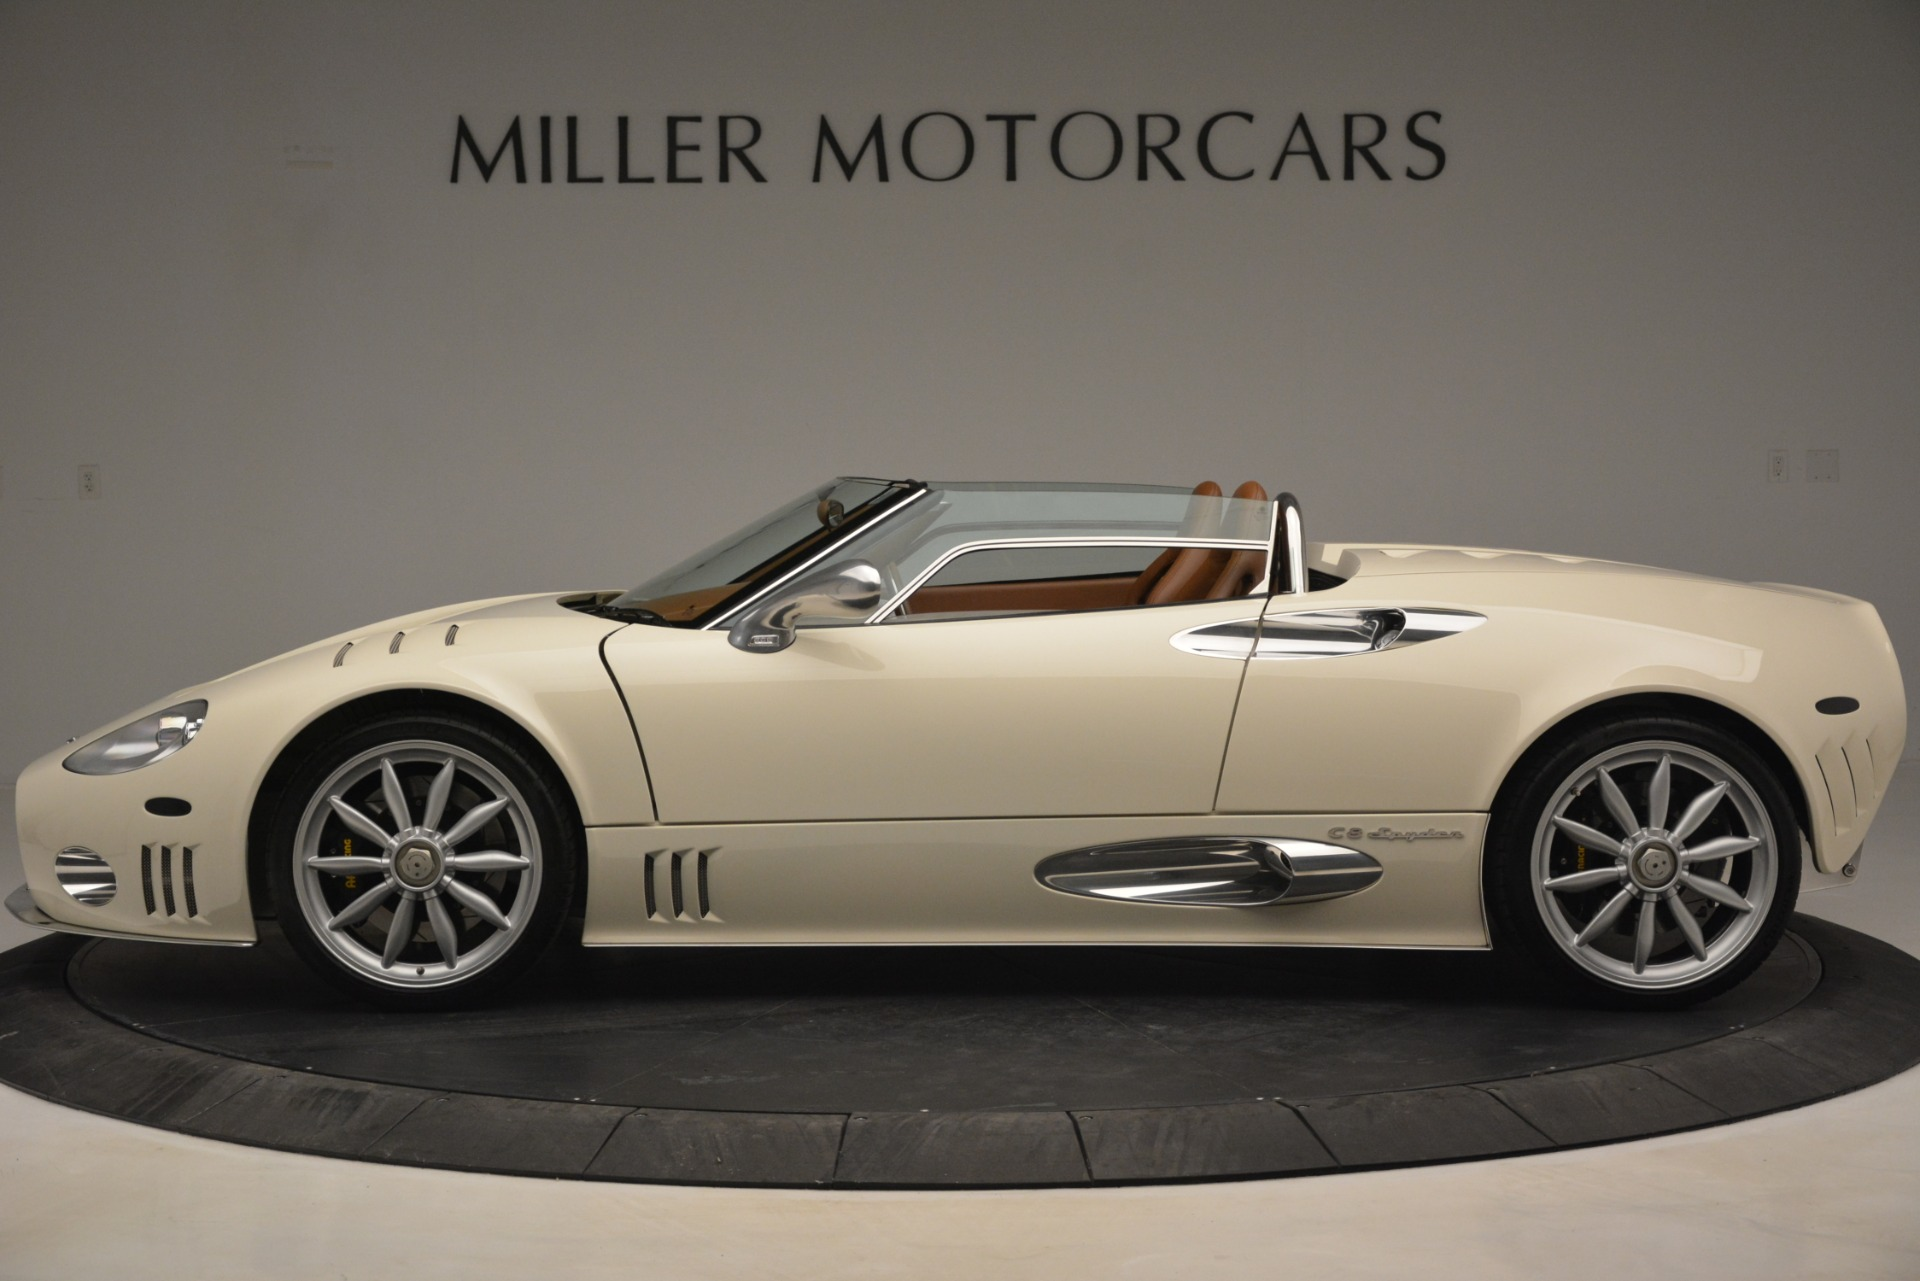 Used 2006 Spyker C8 Spyder  For Sale In Greenwich, CT. Alfa Romeo of Greenwich, 7463 1661_p3